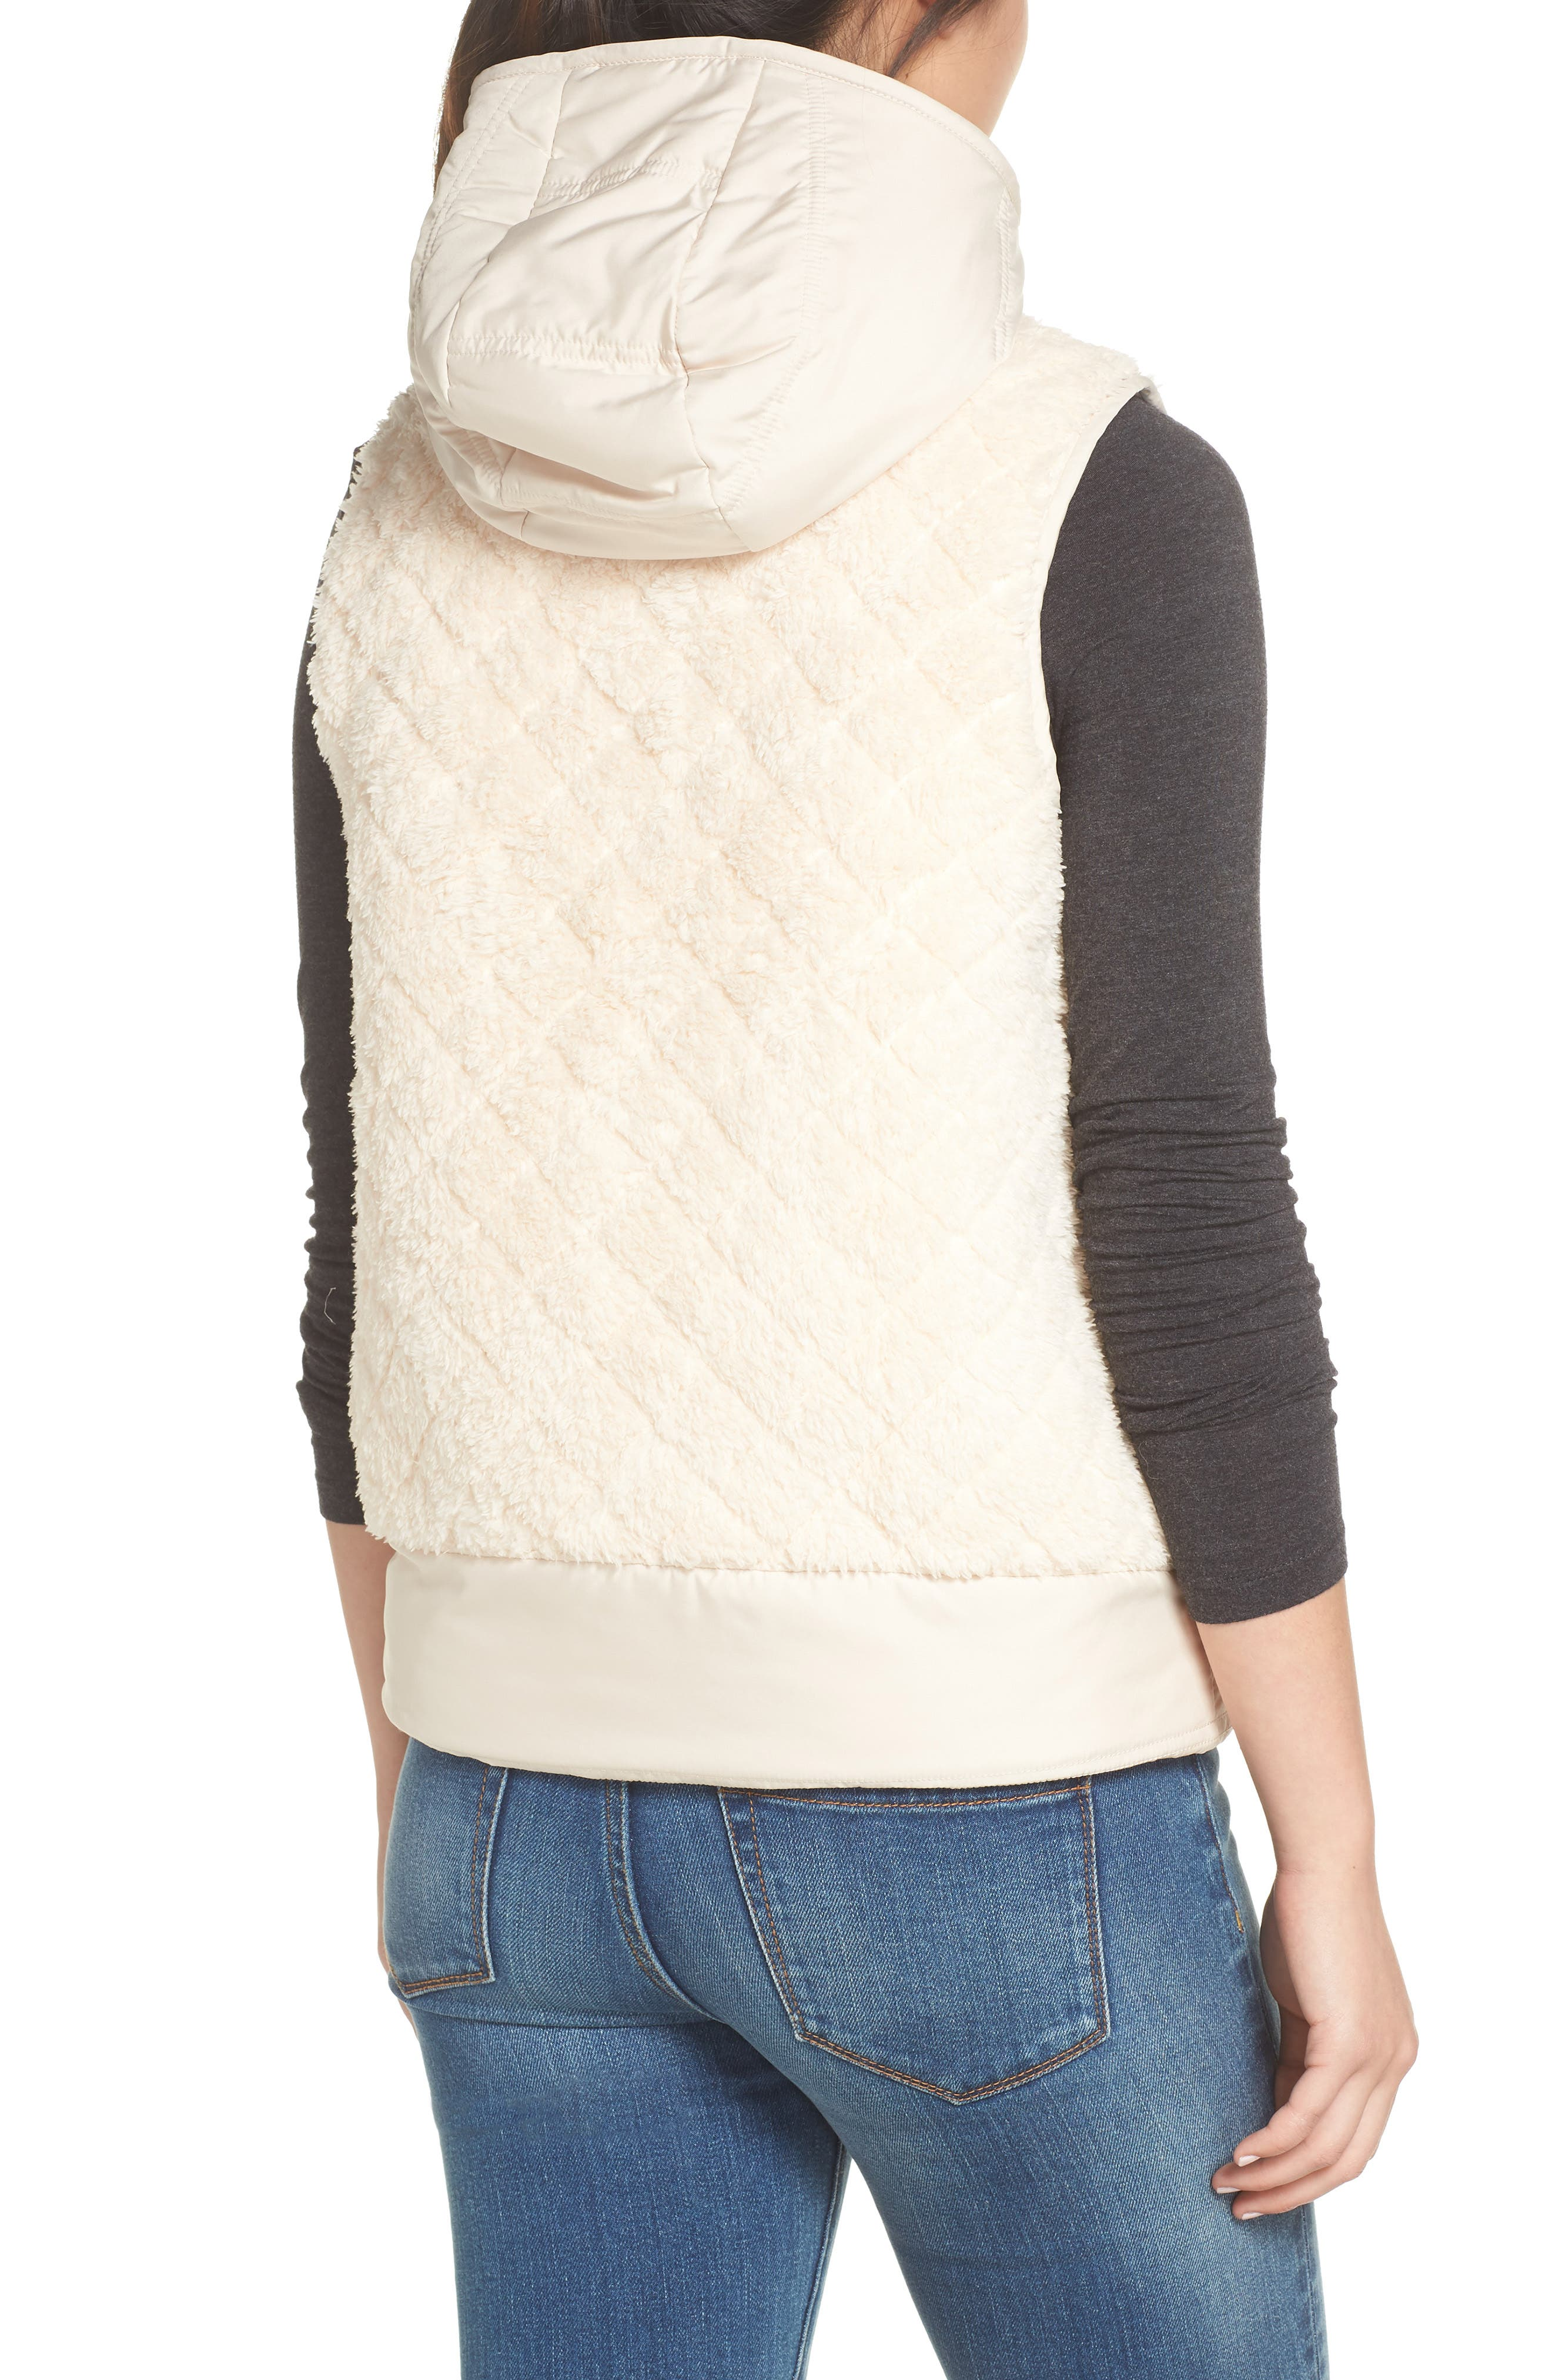 PATAGONIA, Los Gatos Reversible Vest, Alternate thumbnail 2, color, 251